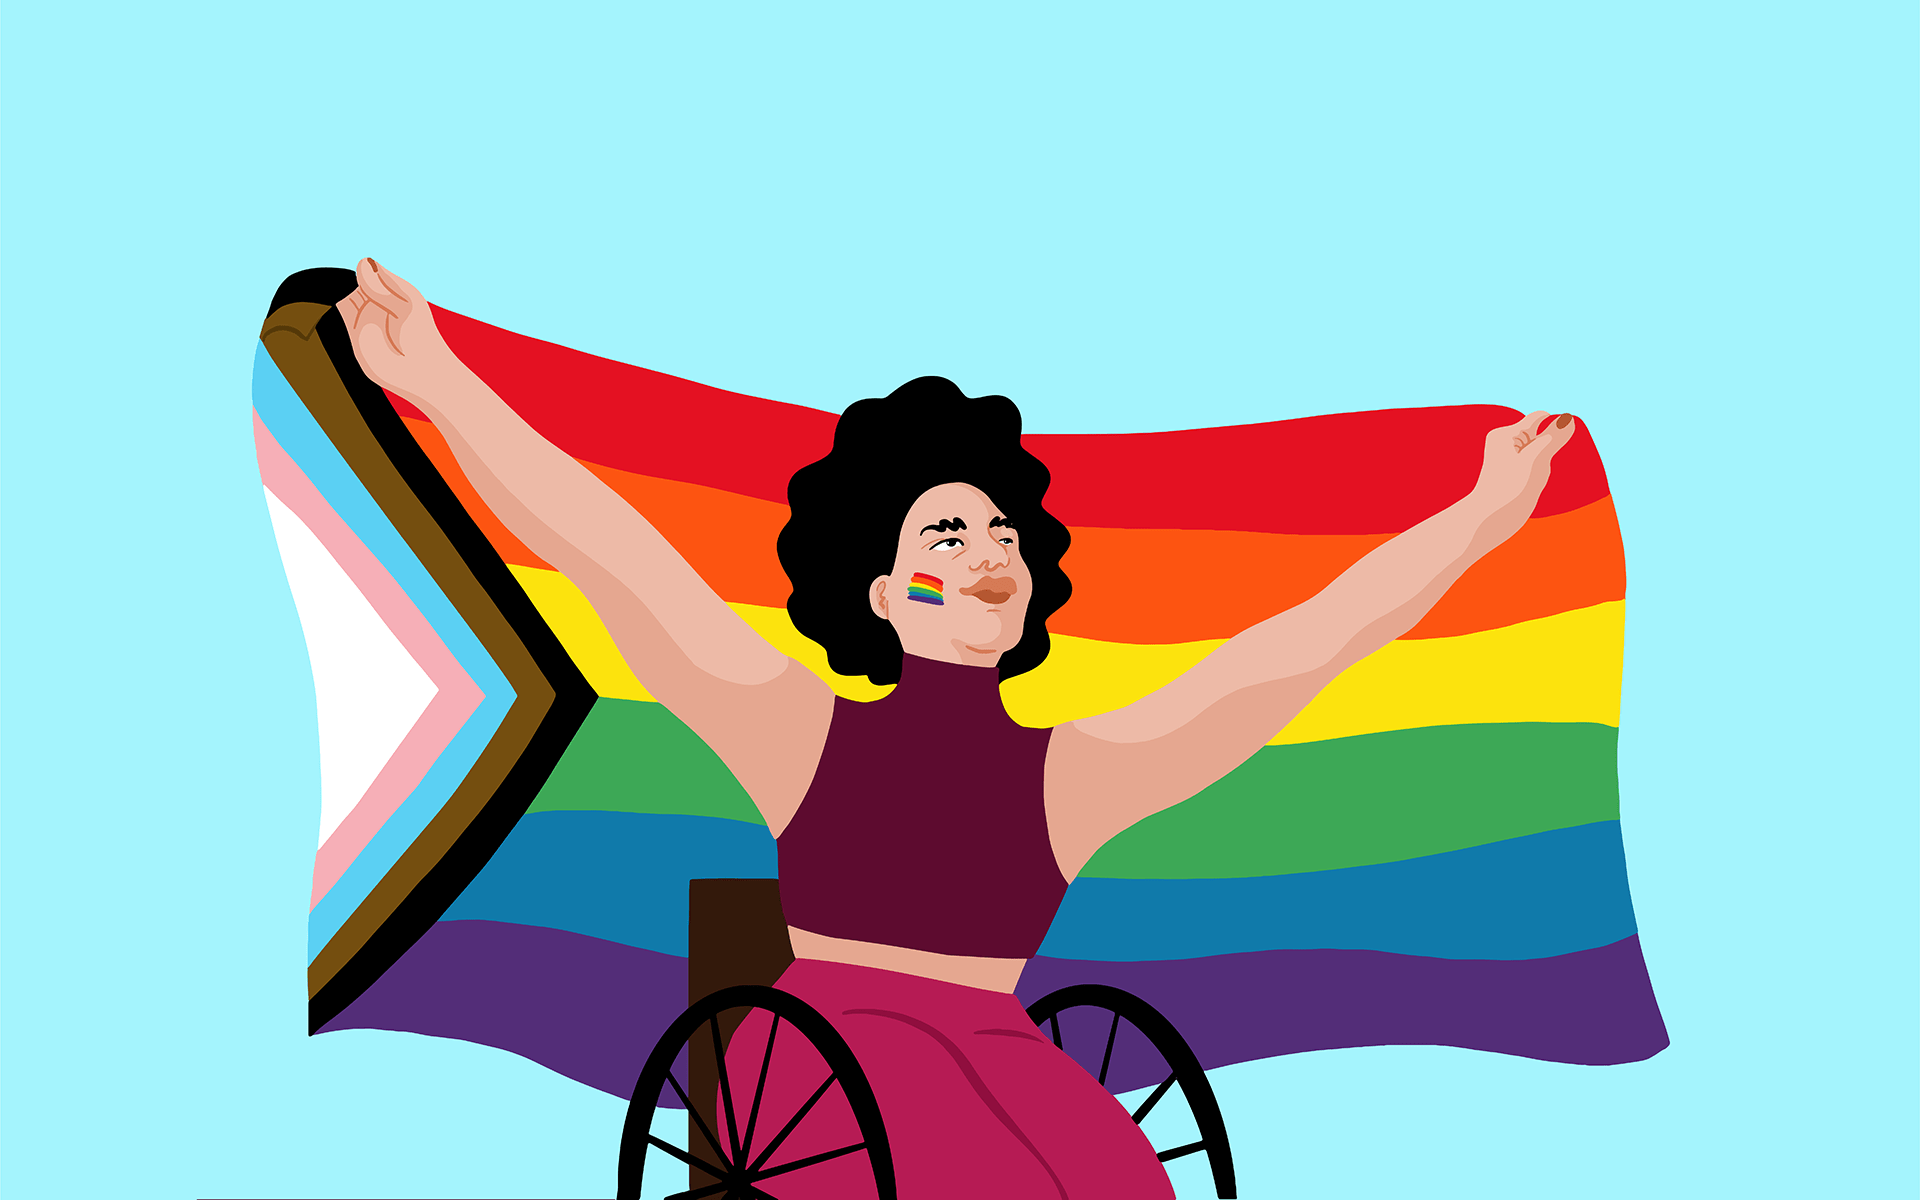 Illustration of a person using a wheelchair holding up the Philly Pride flag behind them over a light blue background. The person has short, black, curly hair, their skin is light, and they have a small rainbow on each of their cheeks.